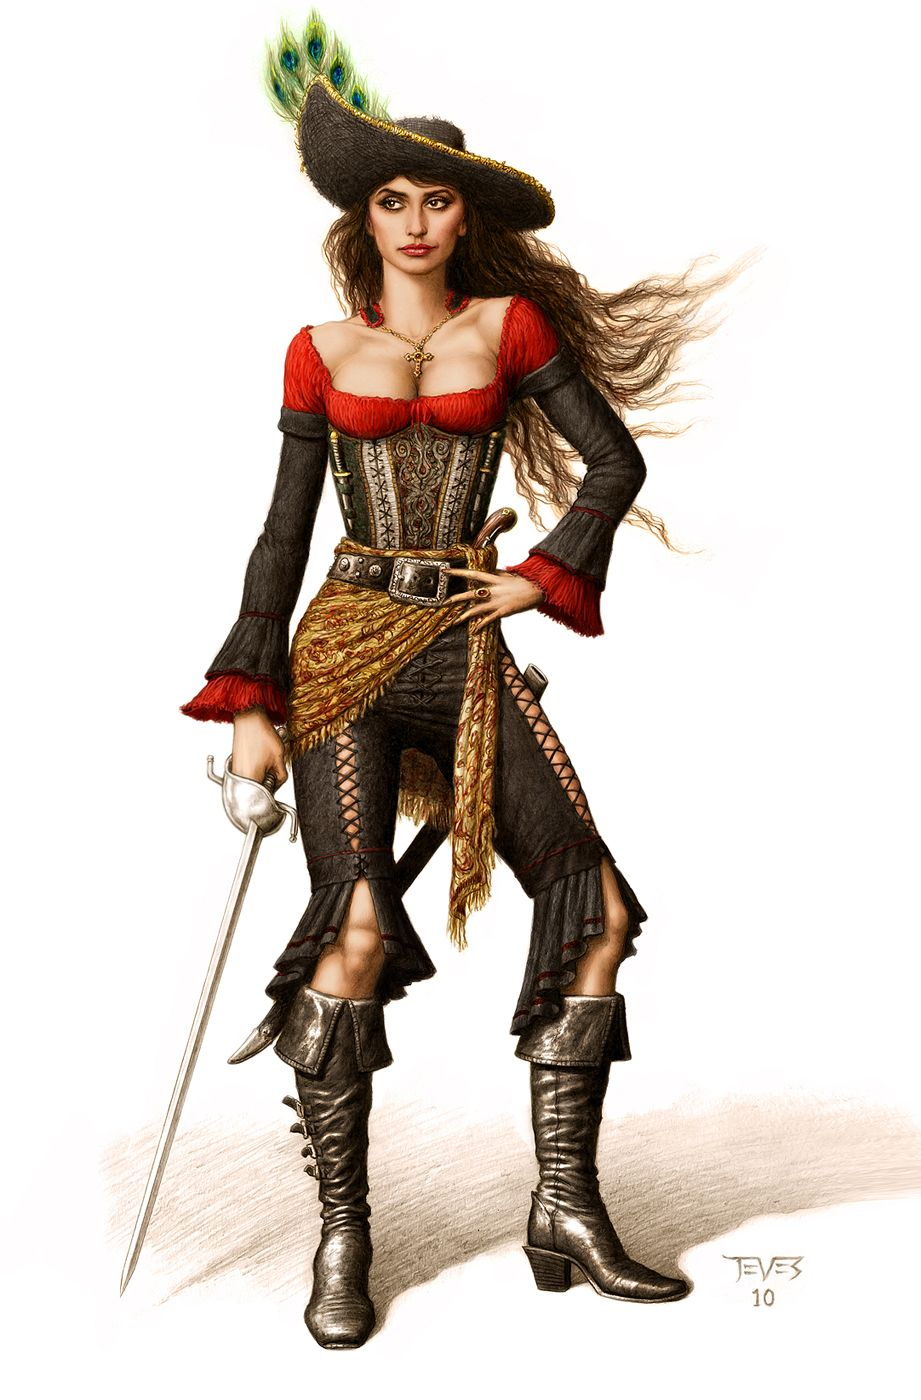 Female Pirate Art | Fantasy Pirate Female | BUCCANEERS | Pinterest | Pirate Art RPG And Characters